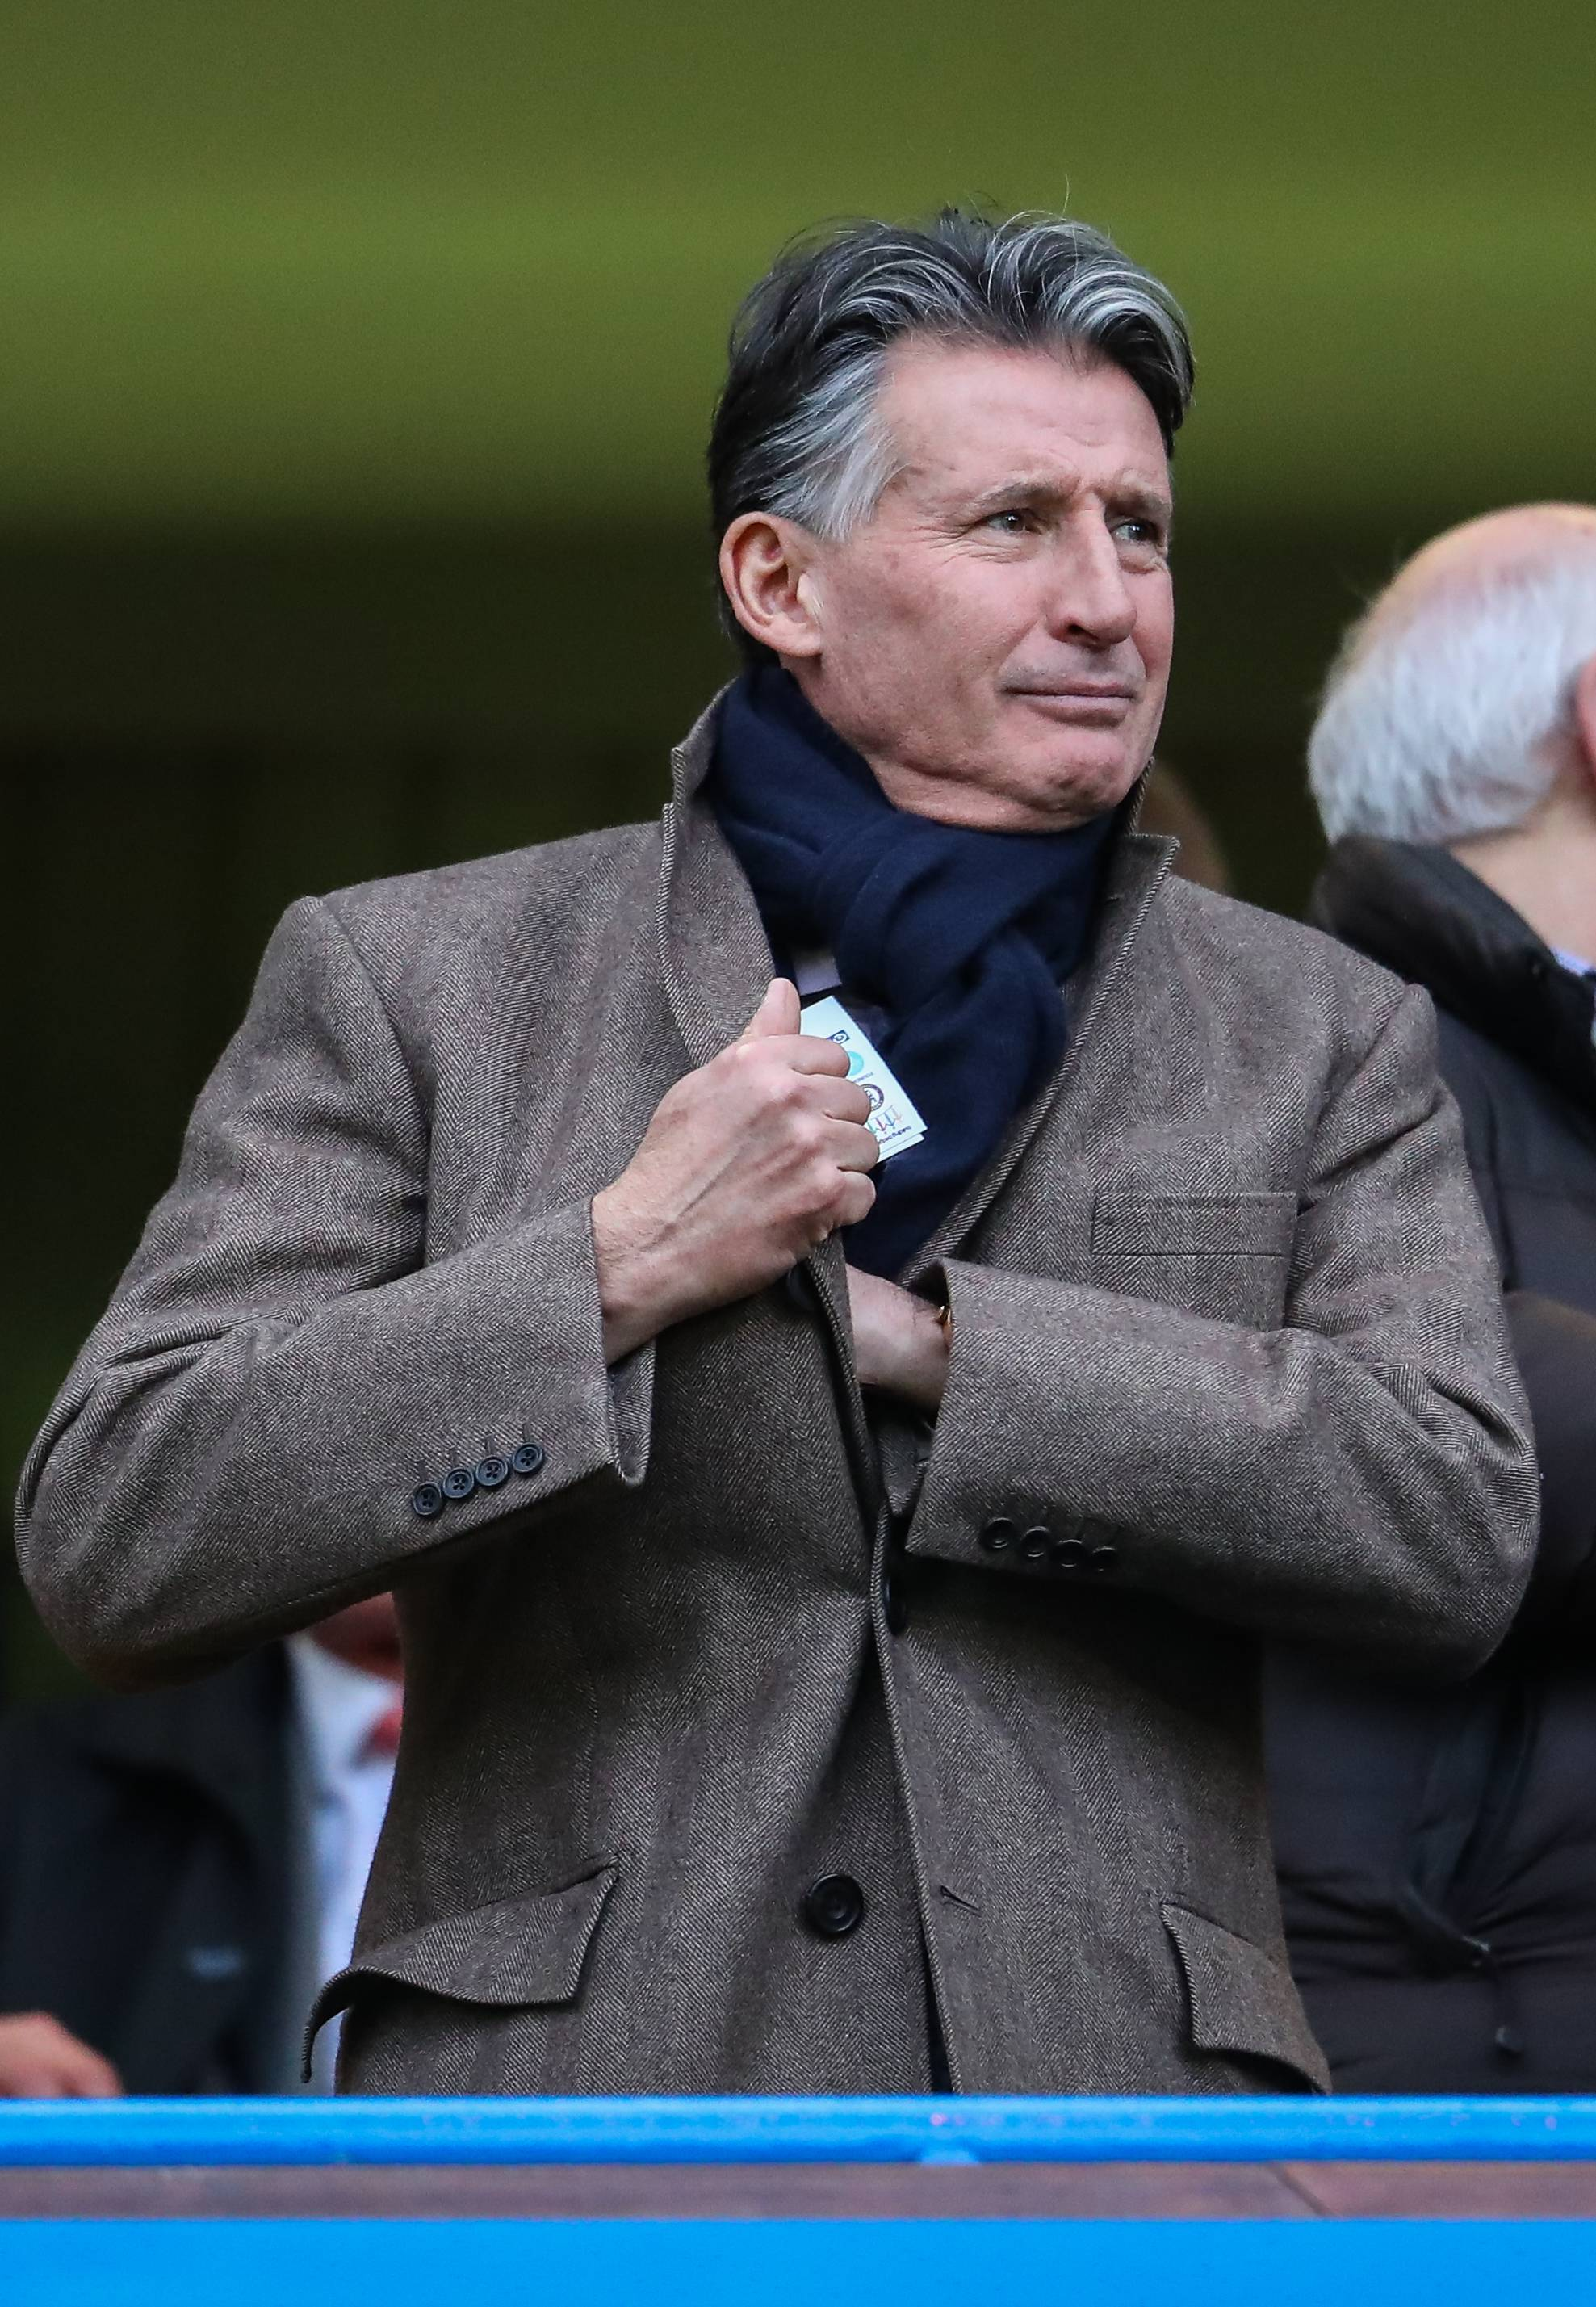 POLAND RIGHTS ONLY Lord Sebastian Coe seen the Premier League match between Chelsea and Brighton & Hove Albion at Stamford Bridge on December 26th 2017 in London, England. (Photo by John Rainford/phcimages.com) LIGA ANGIELSKA PILKA NOZNA SEZON 2017/2018 FOT.PHCIMAGES/NEWSPIX.PL POLAND ONLY!!! --- Newspix.pl *** Local Caption *** www.newspix.pl mail us: info@newspix.pl call us: 0048 022 23 22 222 --- Polish Picture Agency by Ringier Axel Springer Poland